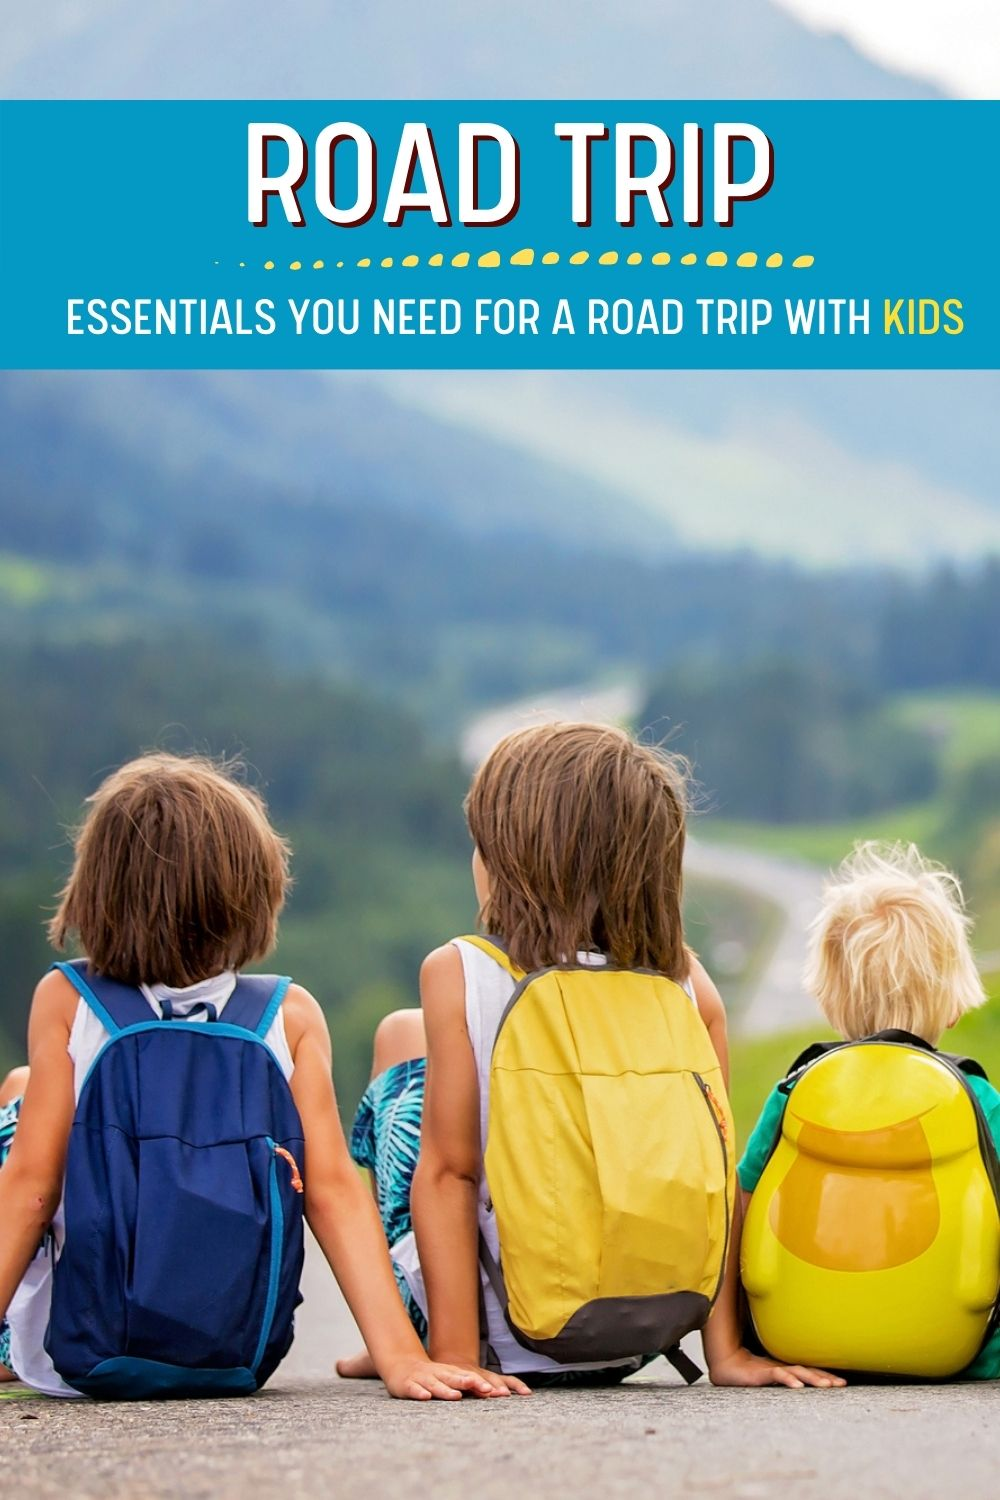 3 kids sitting on road with backpacks